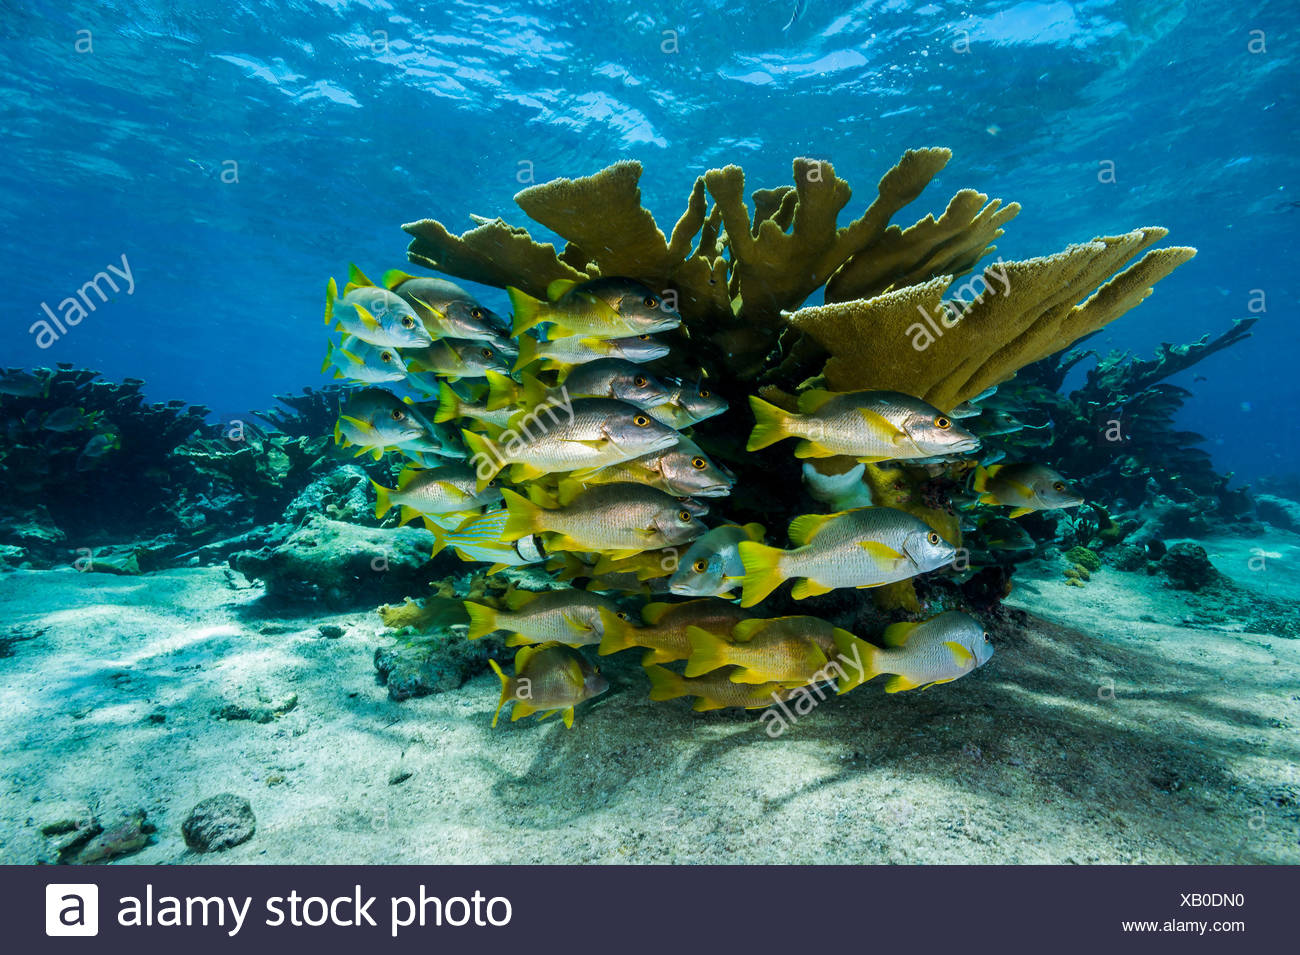 Schools of grunts and snappers swim between branches of endangered elkhorn coral, Acropora palmata. - Stock Image